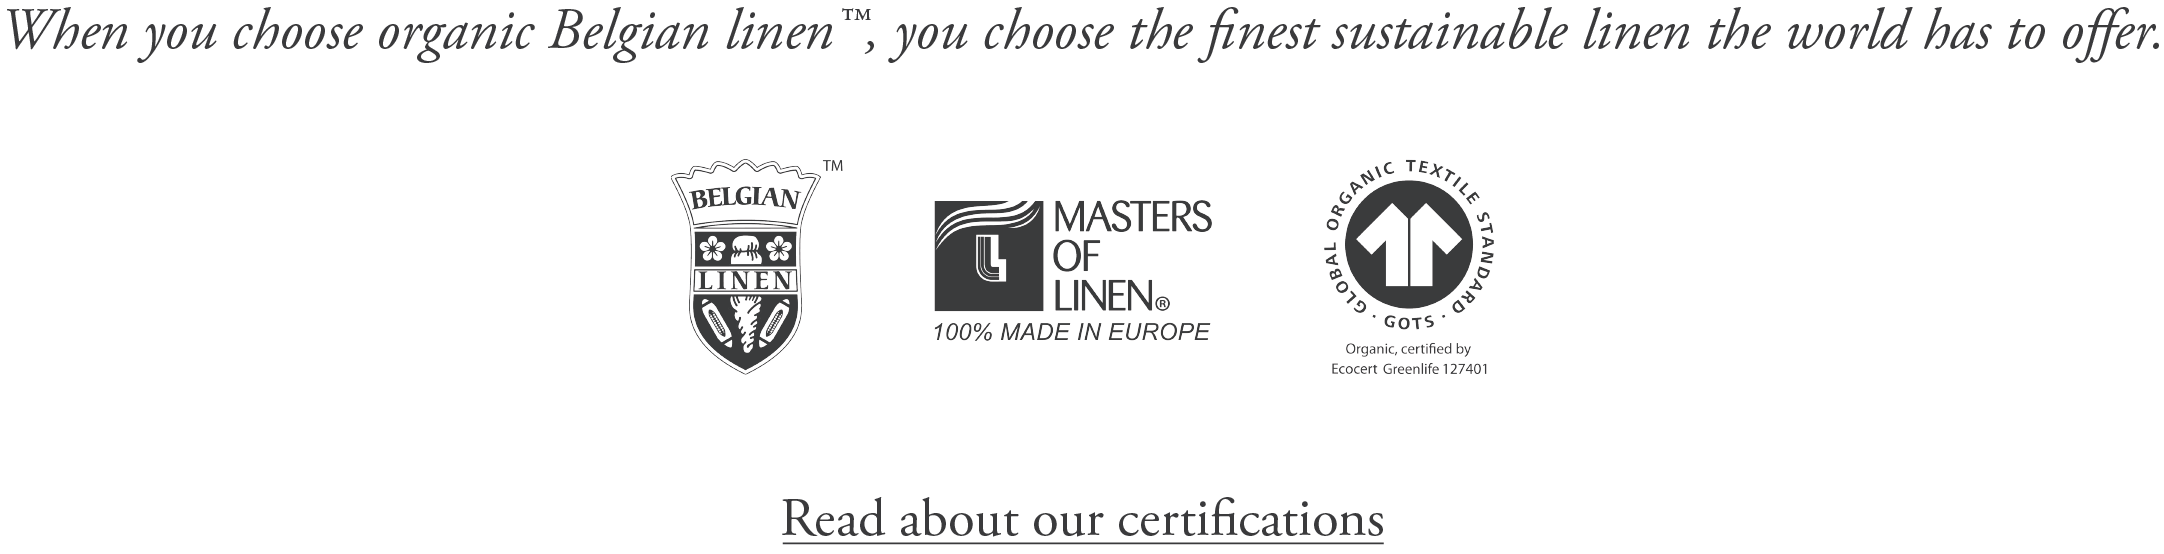 ISE - READ ABOUT CERTIFICATIONS - GOTS MASTERS OF LINEN BELGIAN LINEN OEKO TEX